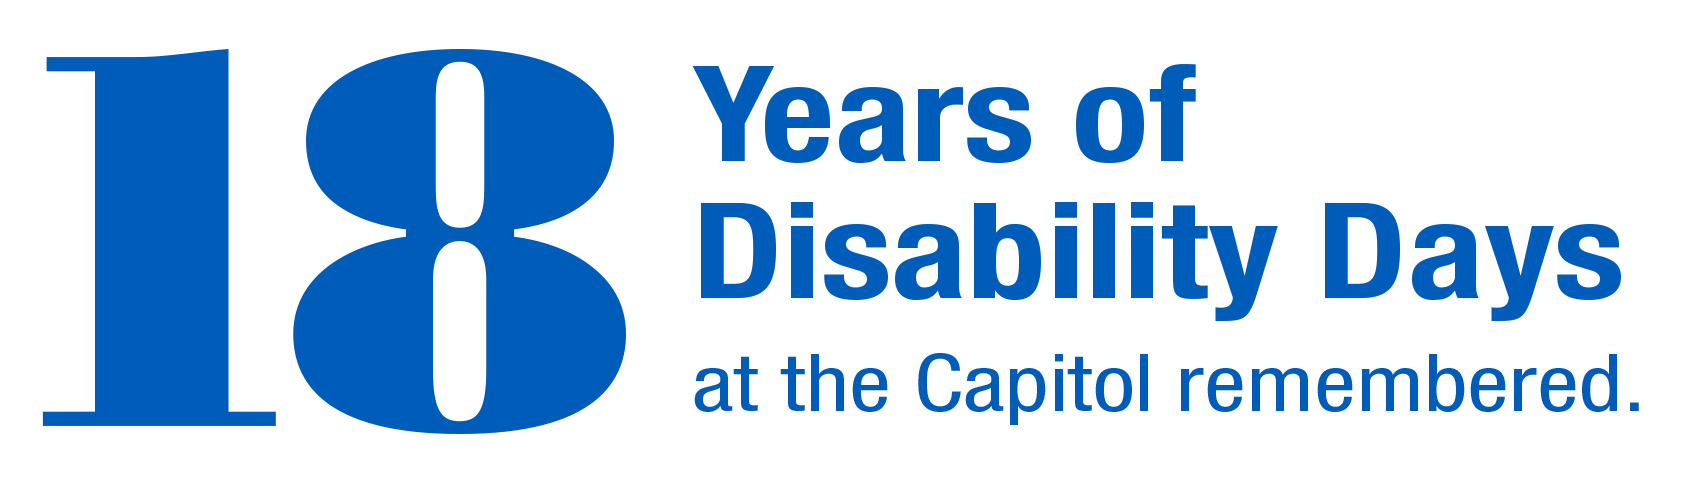 18 Years of Disability Days at the Capitol remembered.